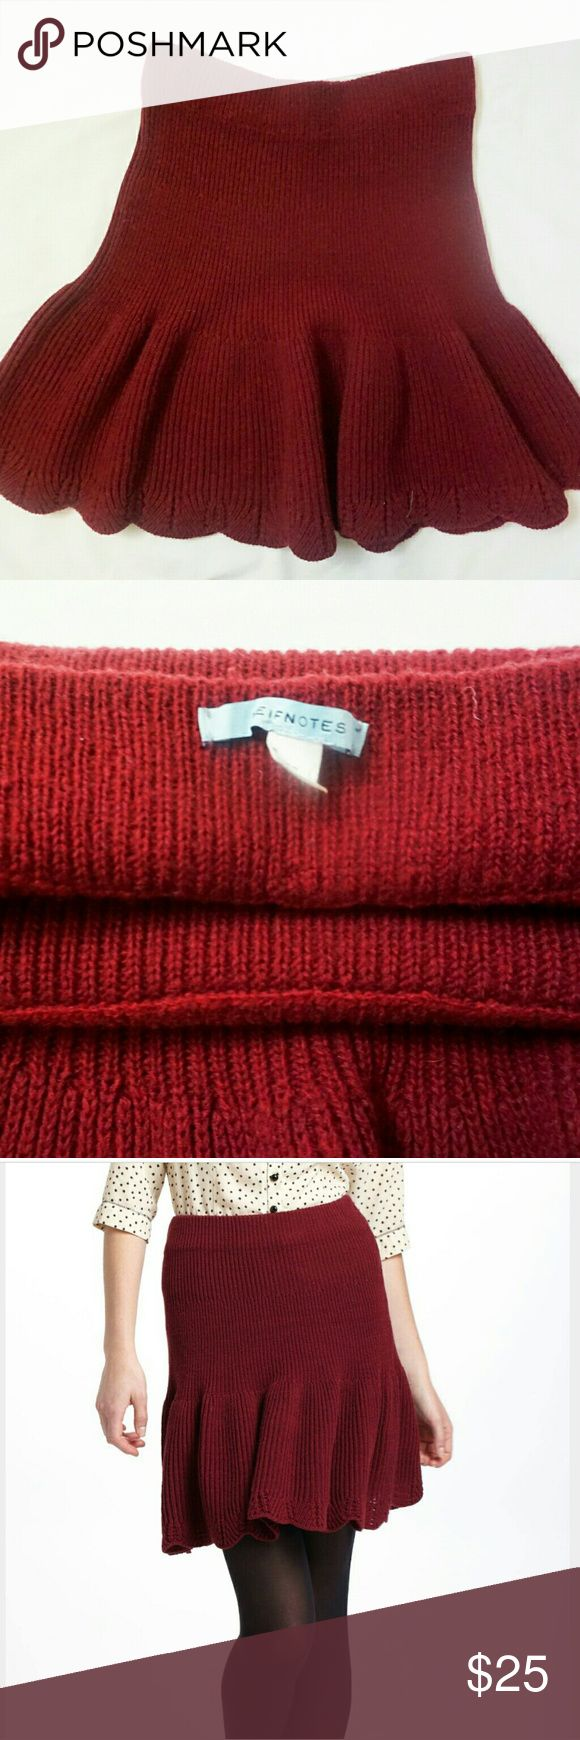 Anthropologie sweater skirt Worn only once! Adorable scallop edged maroon sweater skirt from Anthropologie. Although this is a sweater, it has movement. With an elastic waistband, you can wear this skirt at different lengths. Anthropologie Skirts Mini